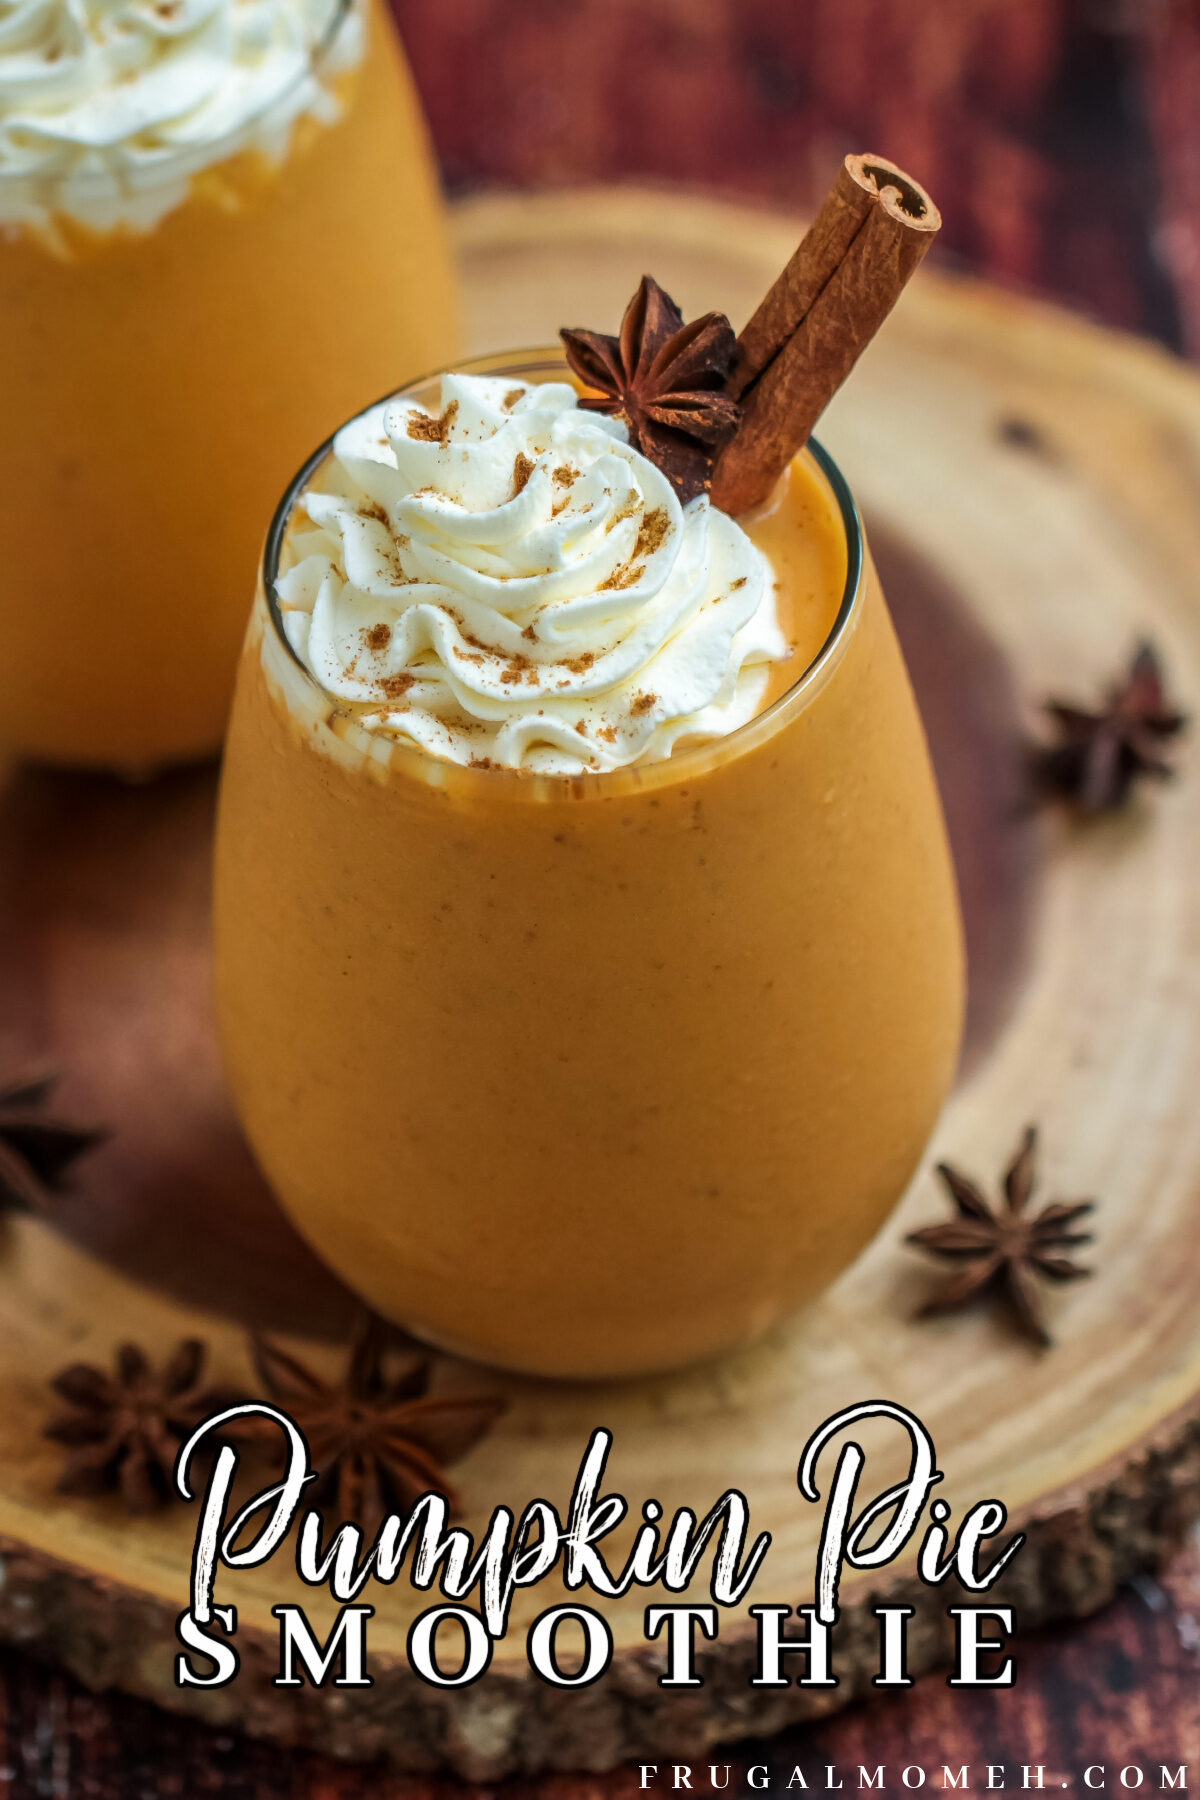 This healthy pumpkin pie smoothie is a great way to use up leftover canned pumpkin puree from Thanksgiving. A delicious fall treat!